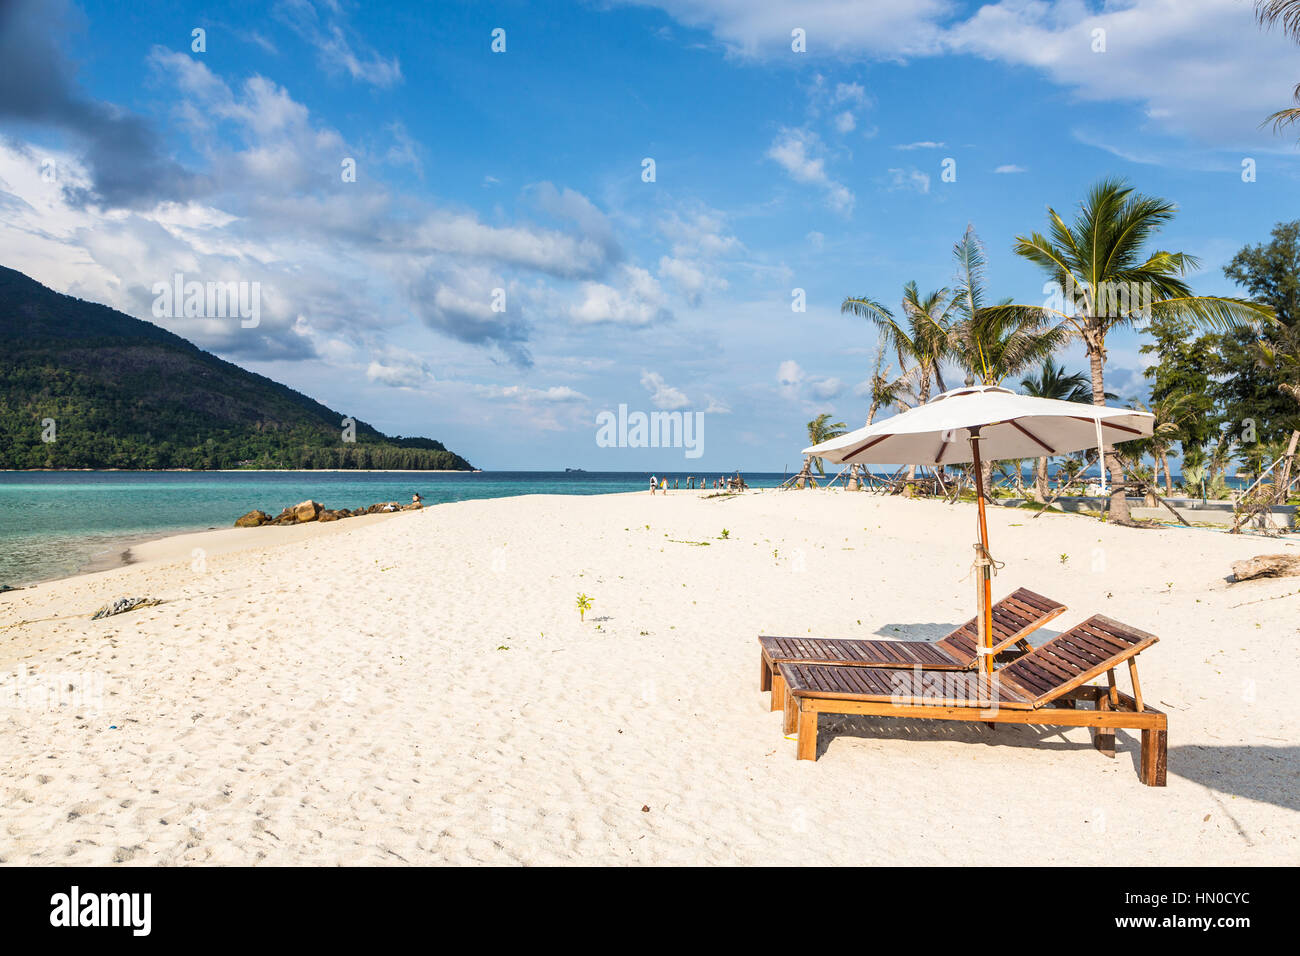 Idyllic white sand beach with long chairs and parasol in Koh Lipe island in south Thailand in the Andaman sea. - Stock Image